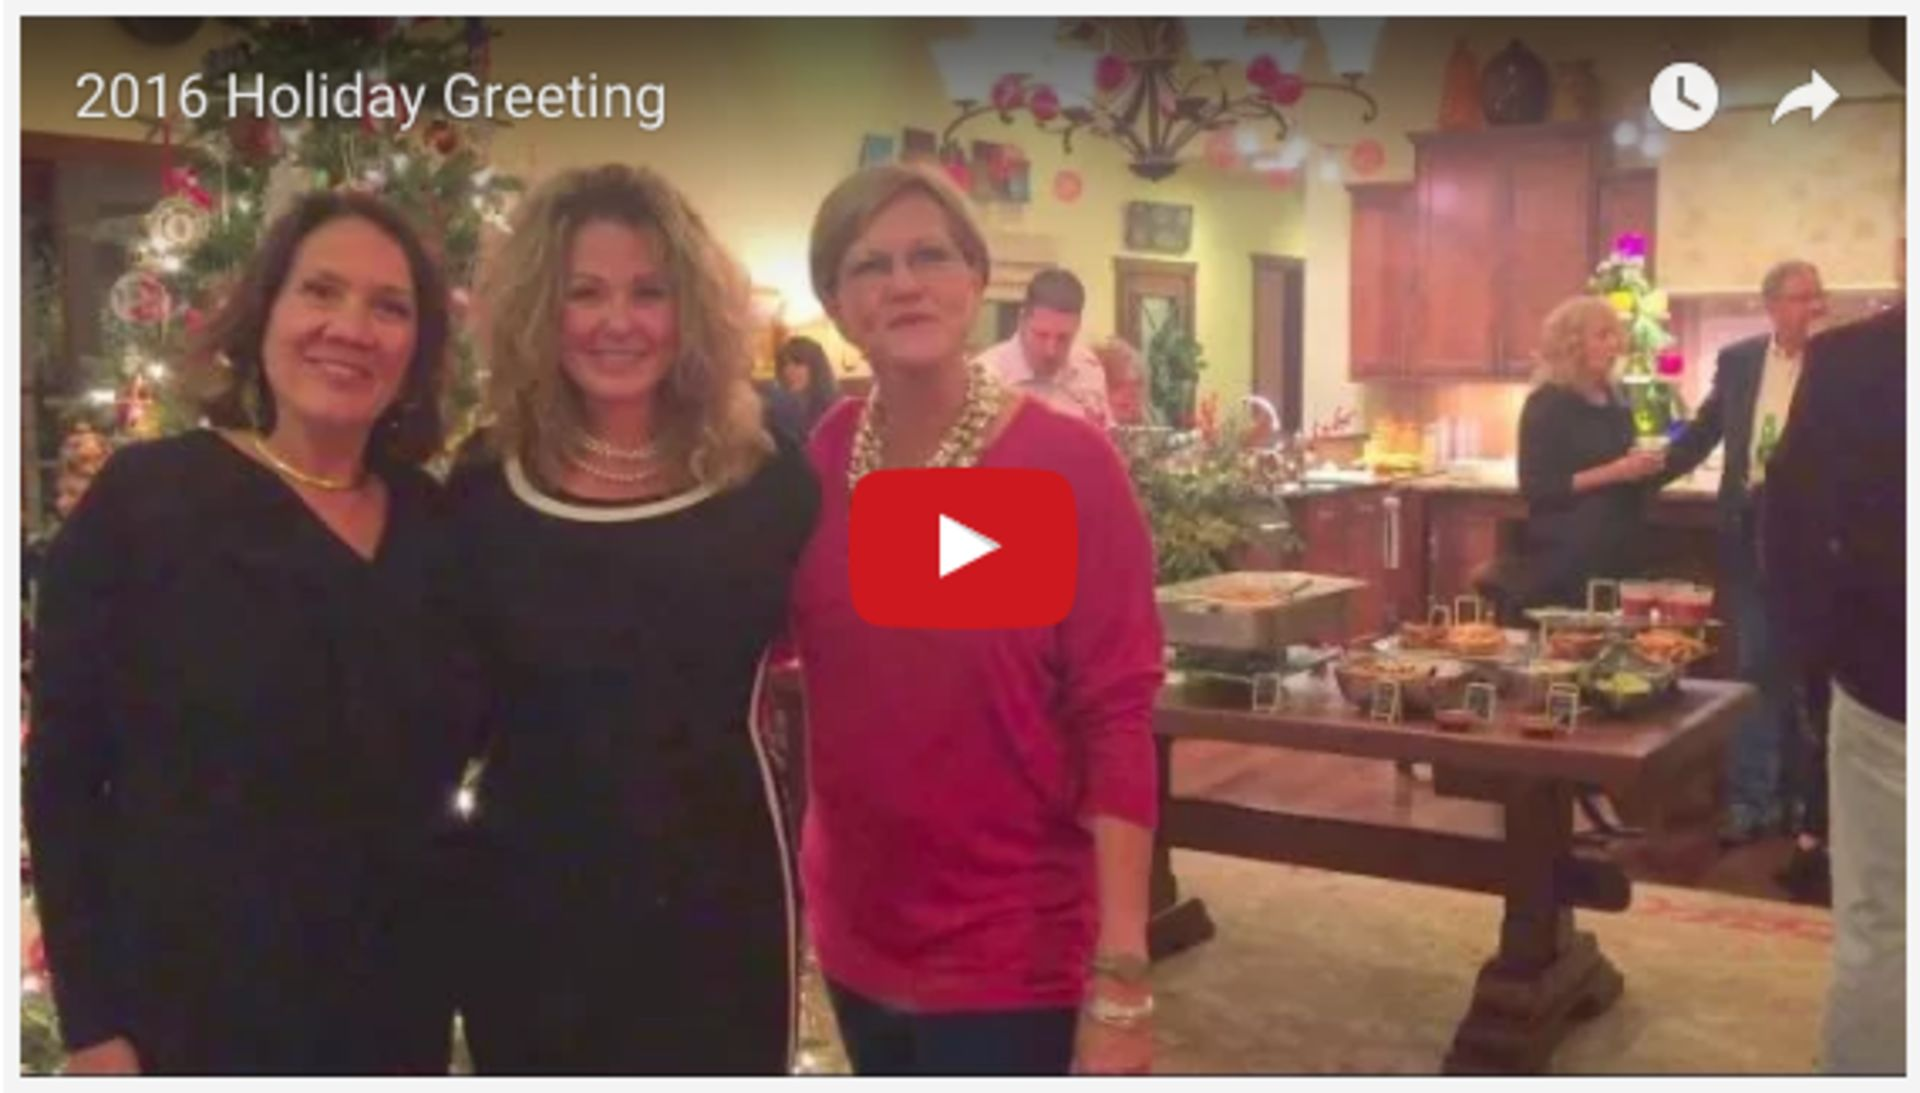 Happy Holidays from The Walker Group